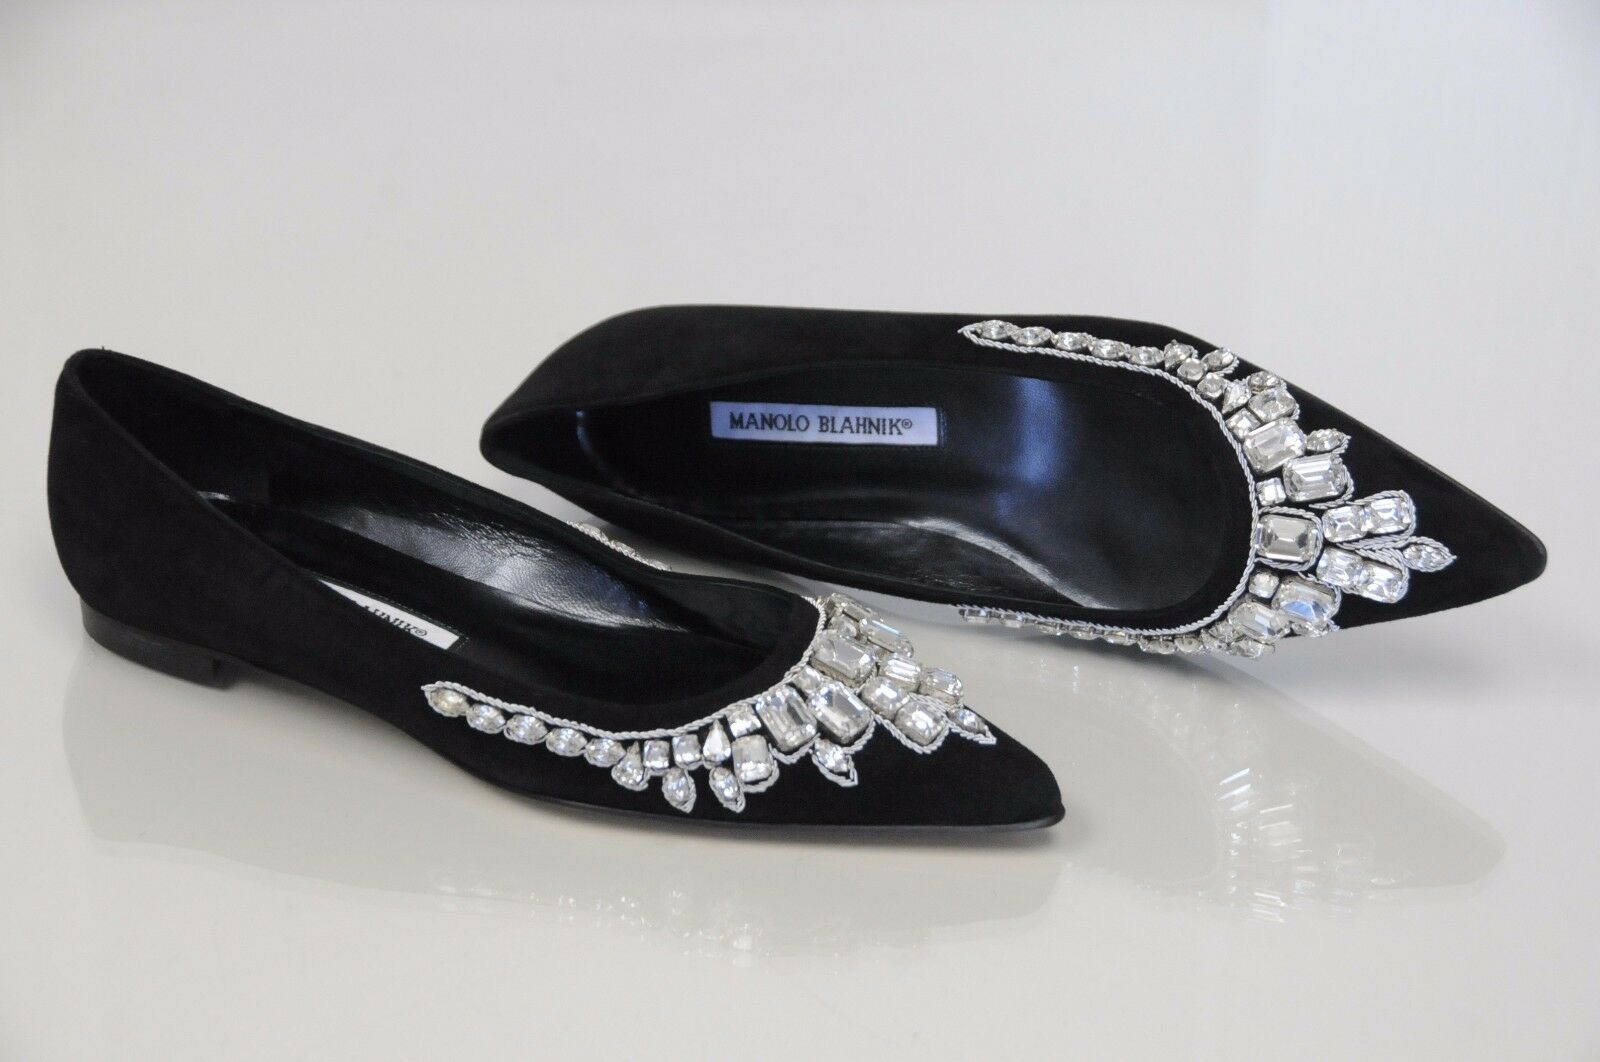 1485 NEW MANOLO BLAHNIK BB JEWELED Black Suede Pointy Flats Ballet SHOES 35.5